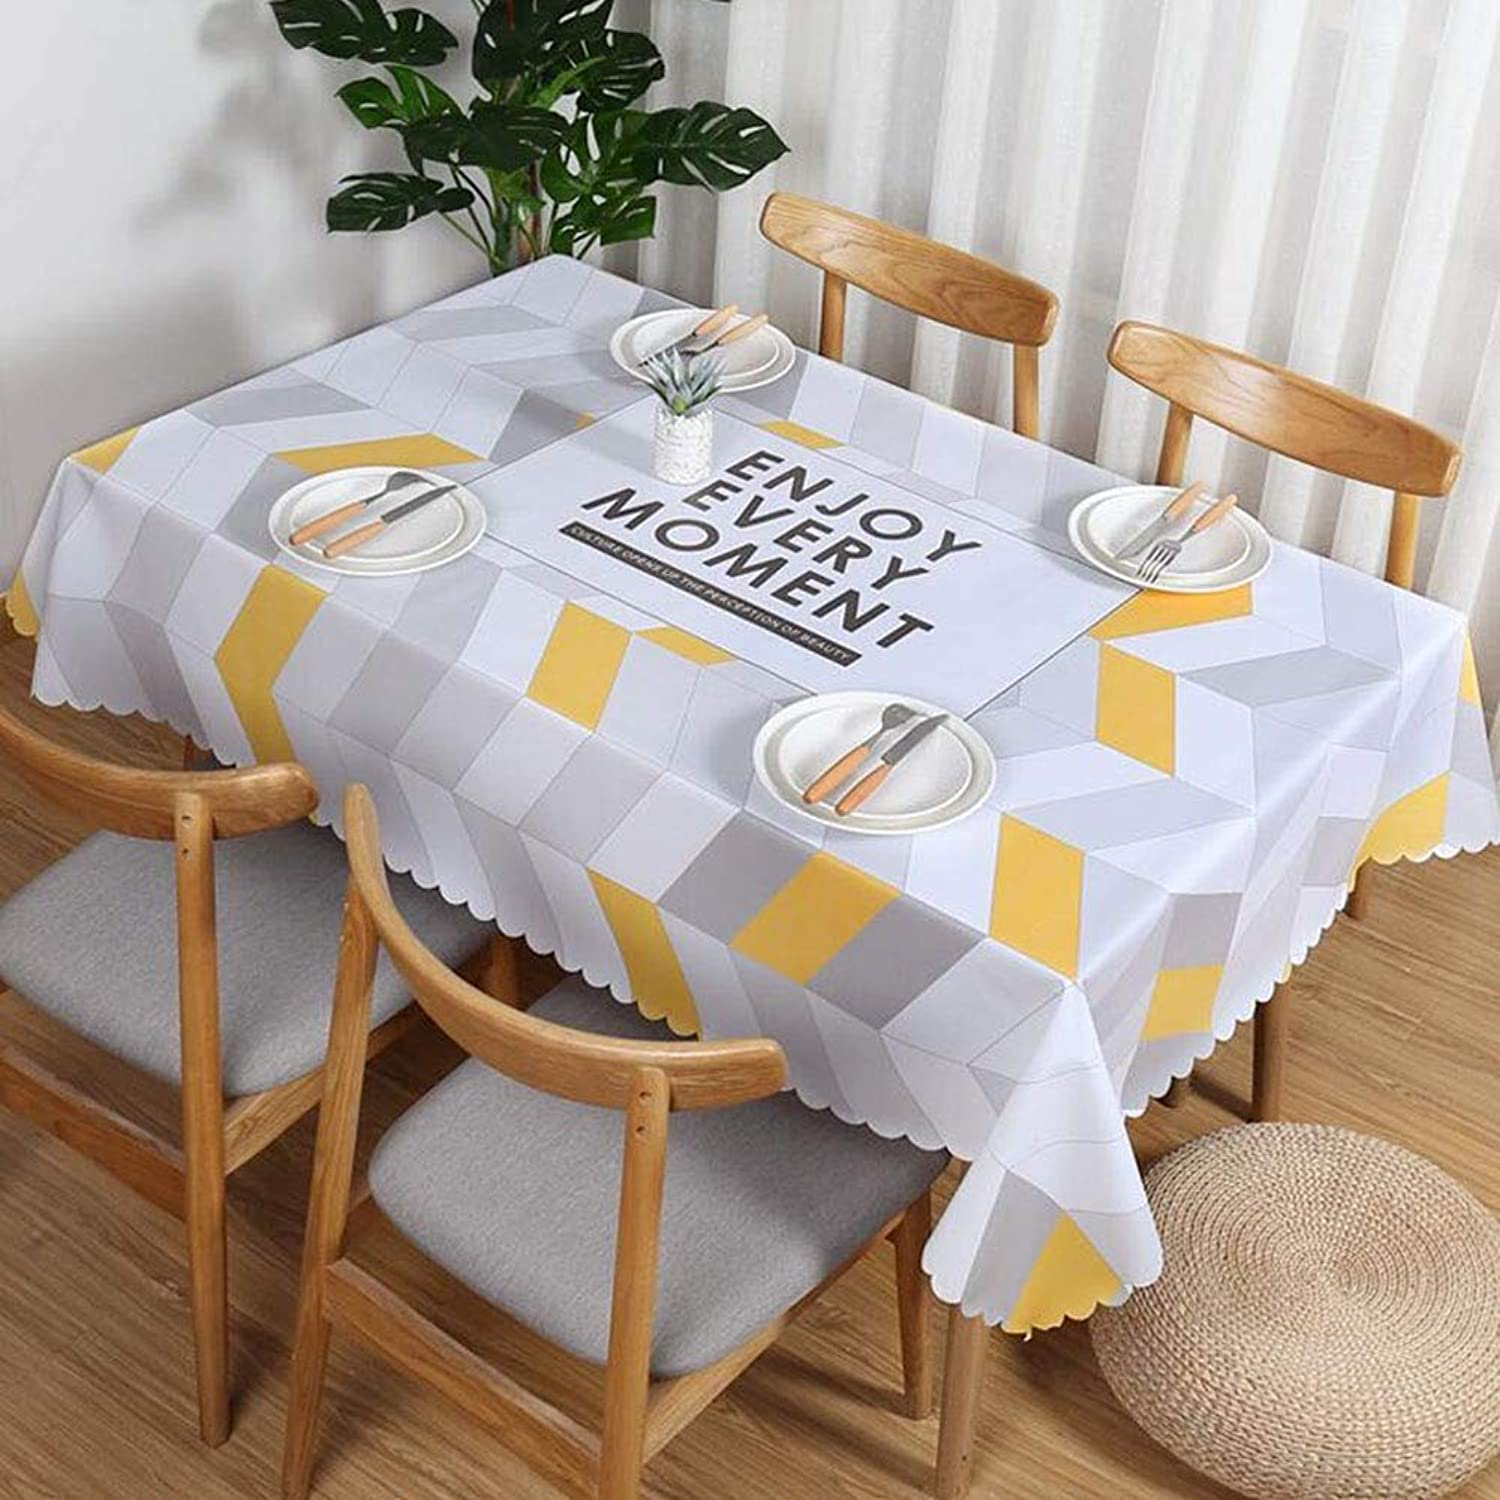 QY Tablecloth Fashion Wipe Clean PVC Rectangle Vinyl Tablecloth Oil-Proof Anti-scalding No Wash Kitchen Greasy Decoration (color   M White, Size   110  160cm)